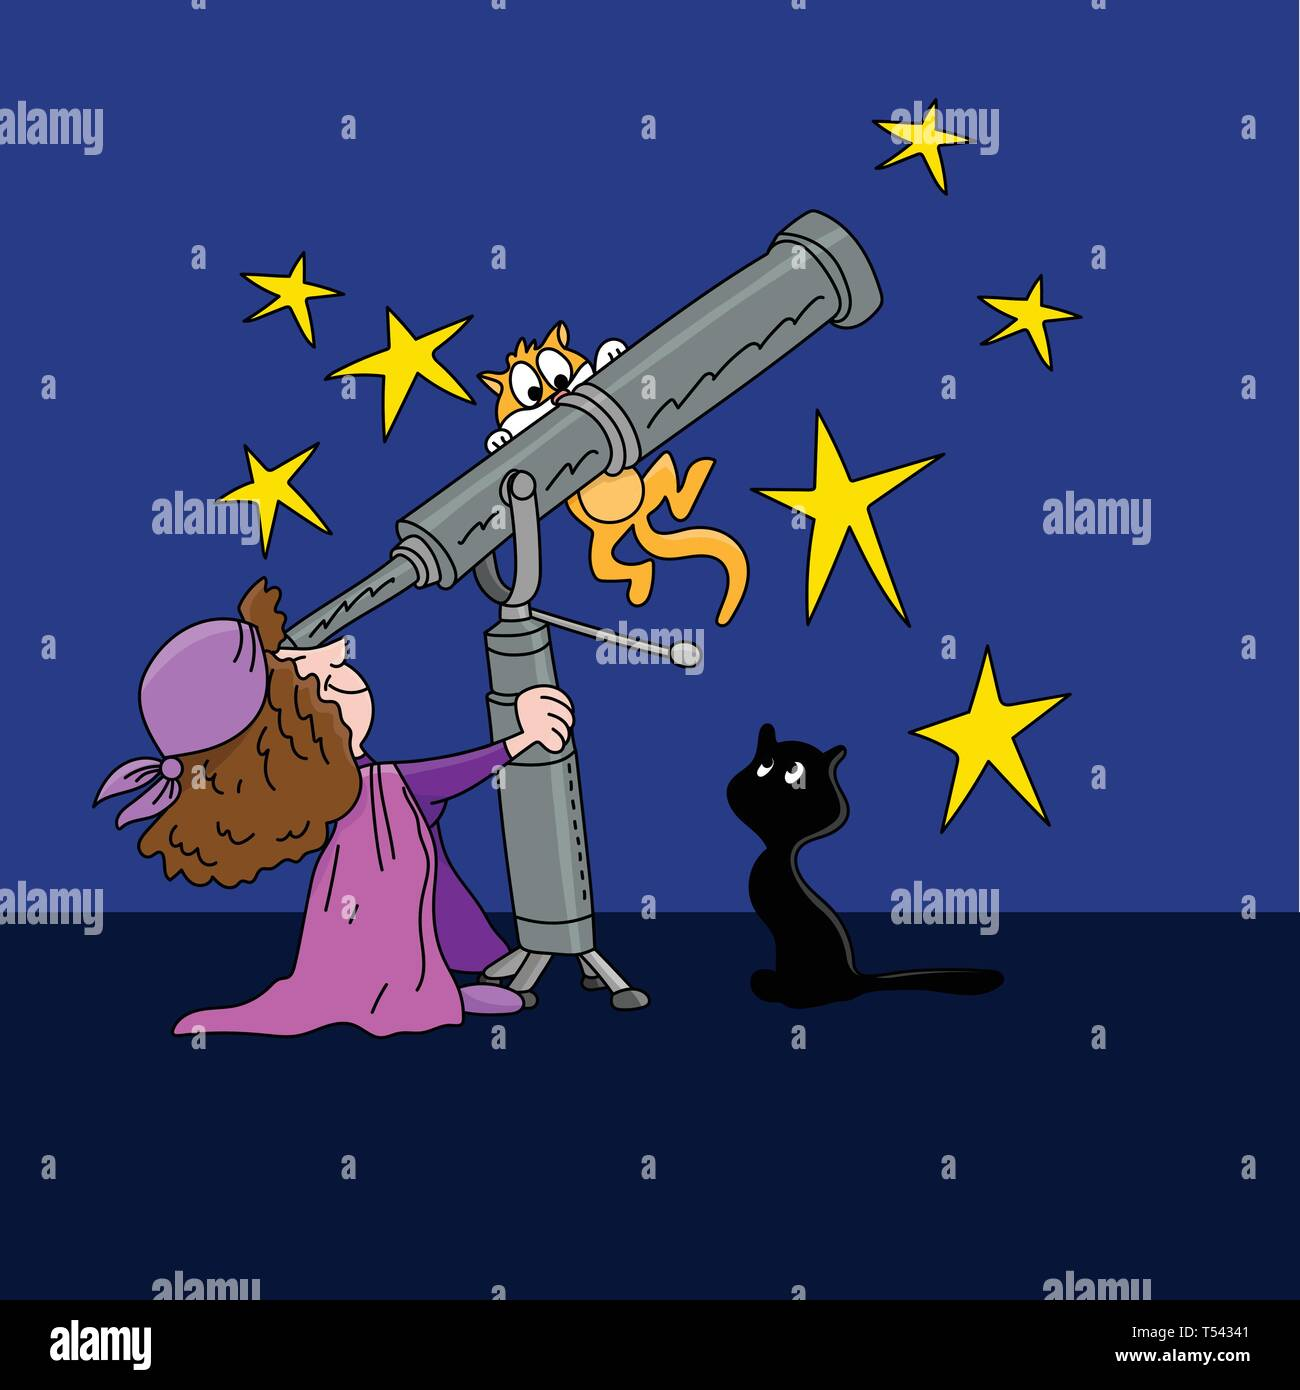 Cartoon astrologer looking at the star positions in the sky with a telescope at night time vector illustration - Stock Vector